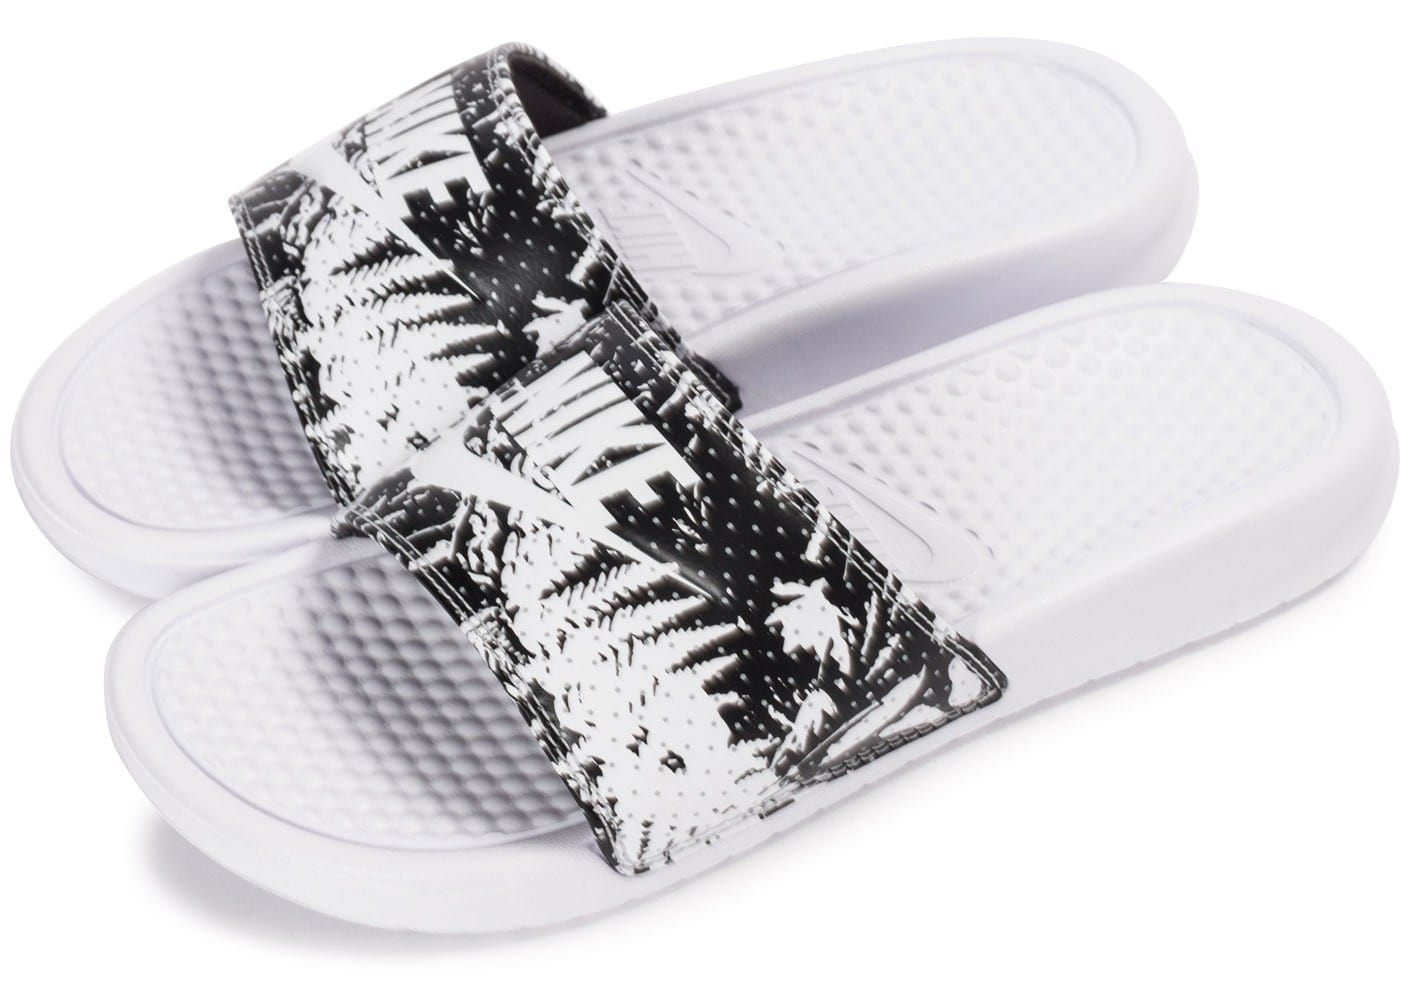 Nike Benassi Just Do It print blanche - Chaussures ...